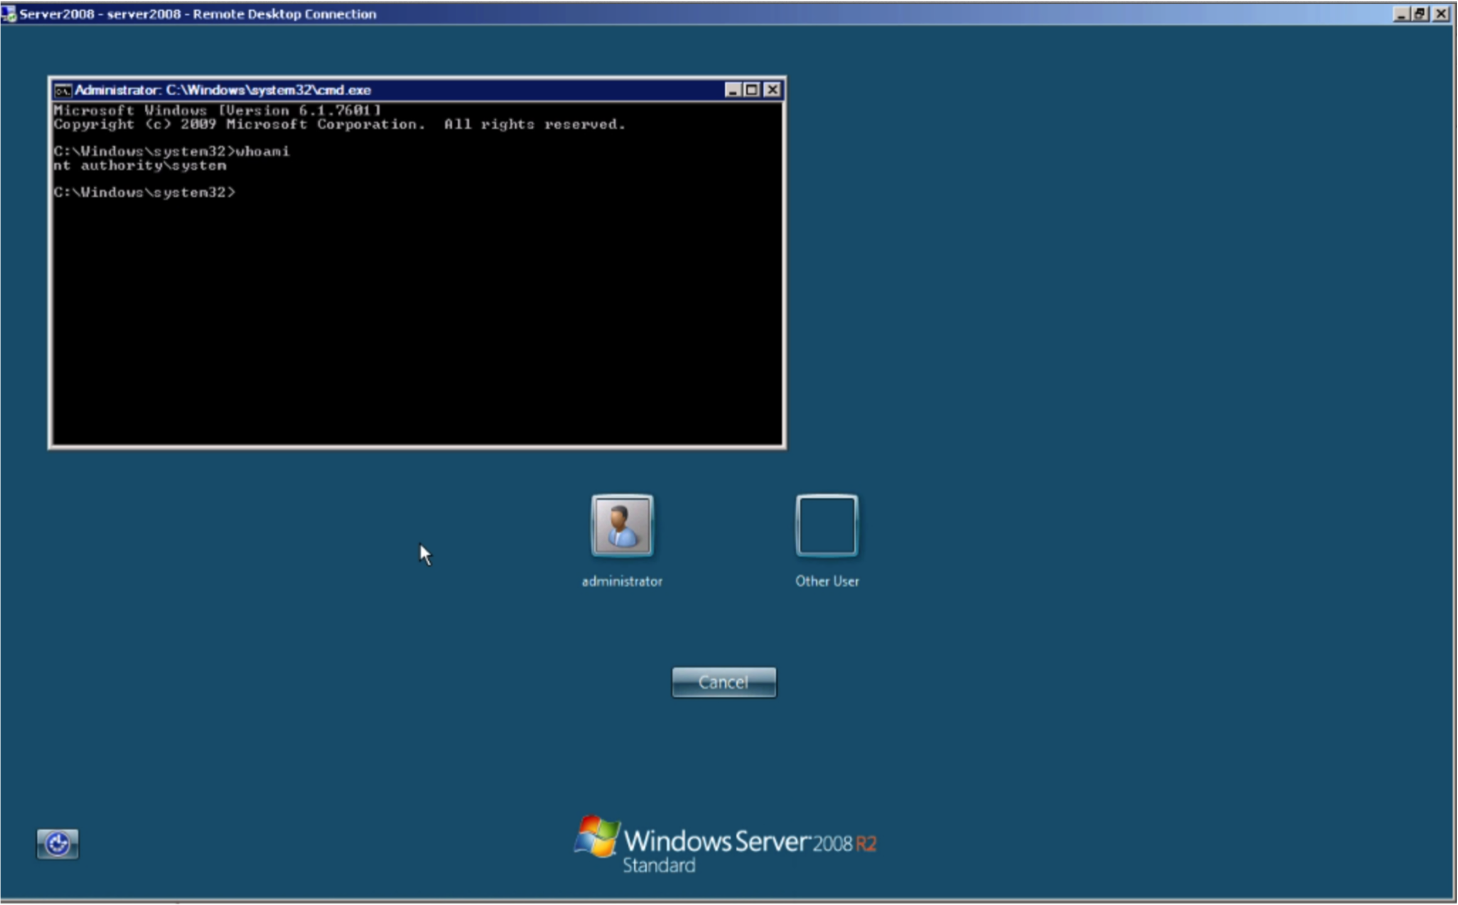 Command Prompt running with SYSTEM privileges